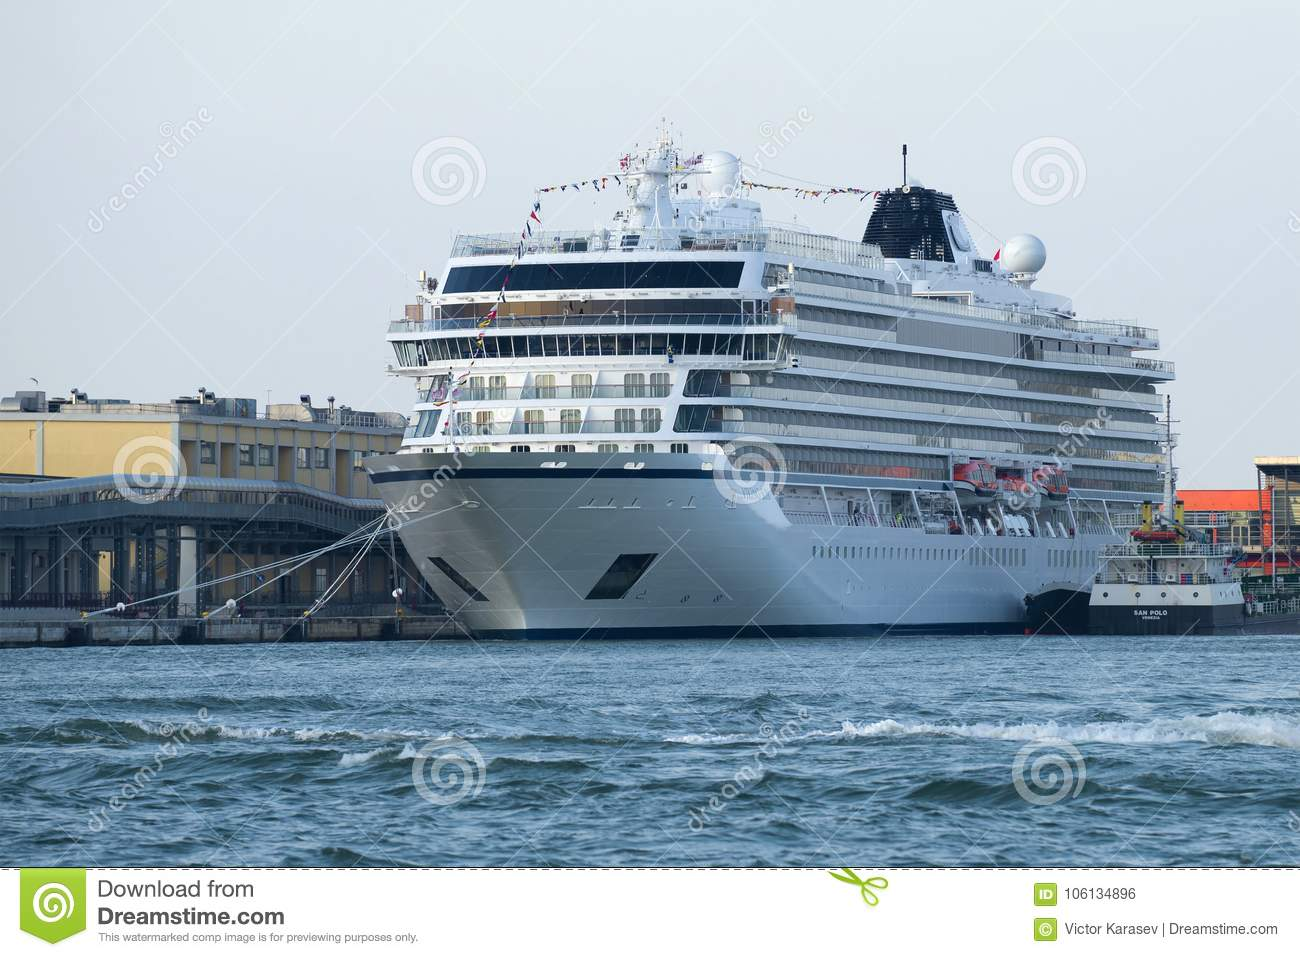 The Newest Cruise Ship Viking Sun Of The Company Viking Ocean